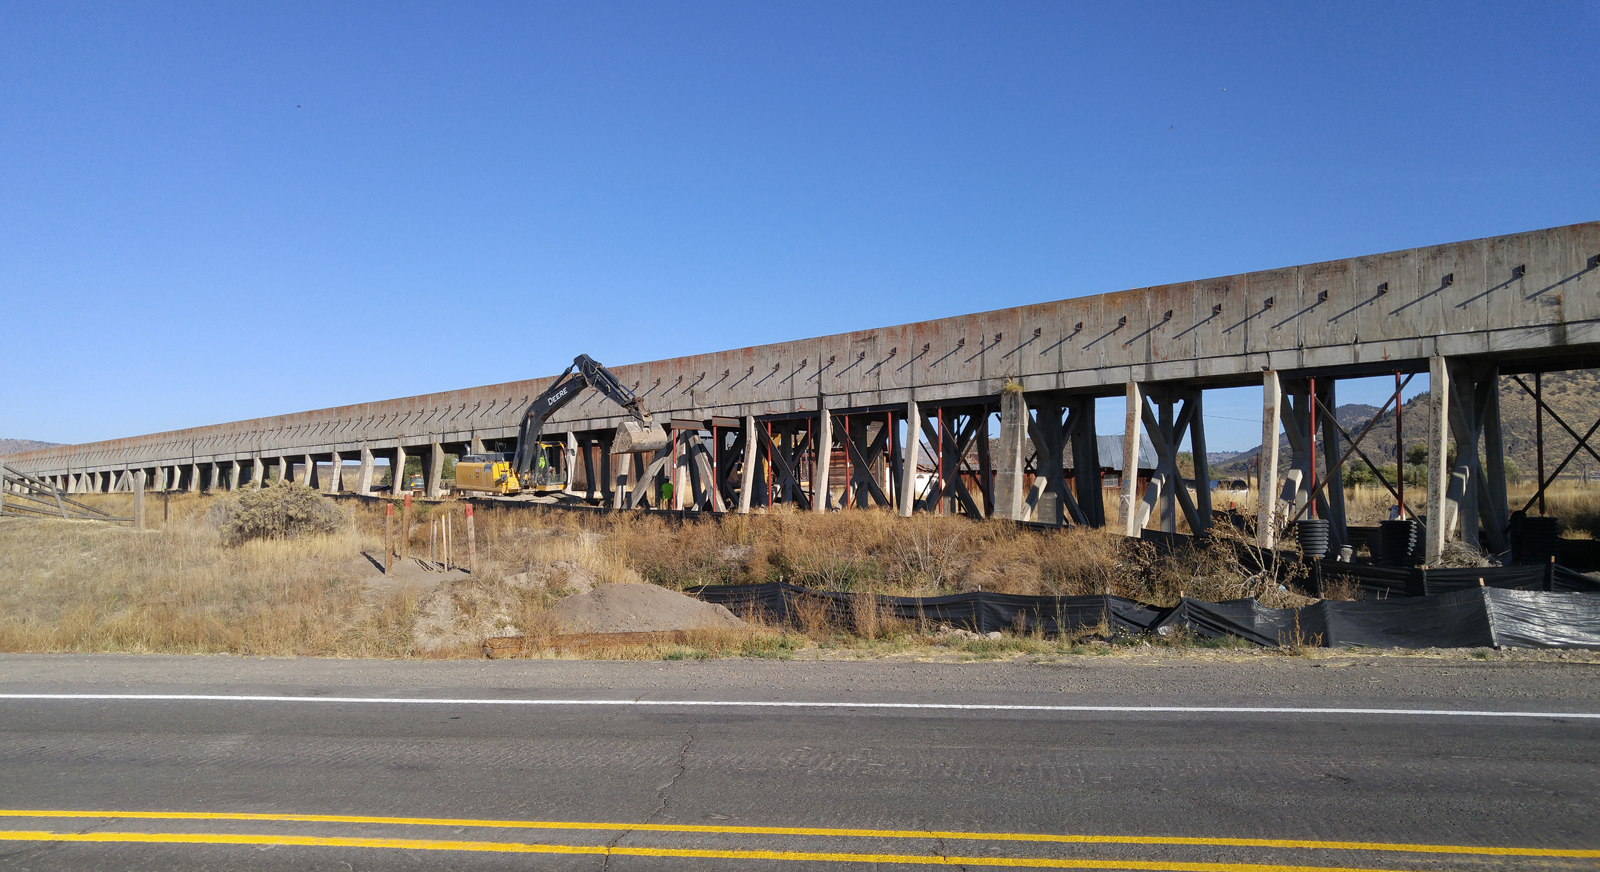 A walking history tour of the C flume near Henley will be offered Saturday, Oct. 21, by the Klamath County Museum and the U.S. Bureau of Reclamation.